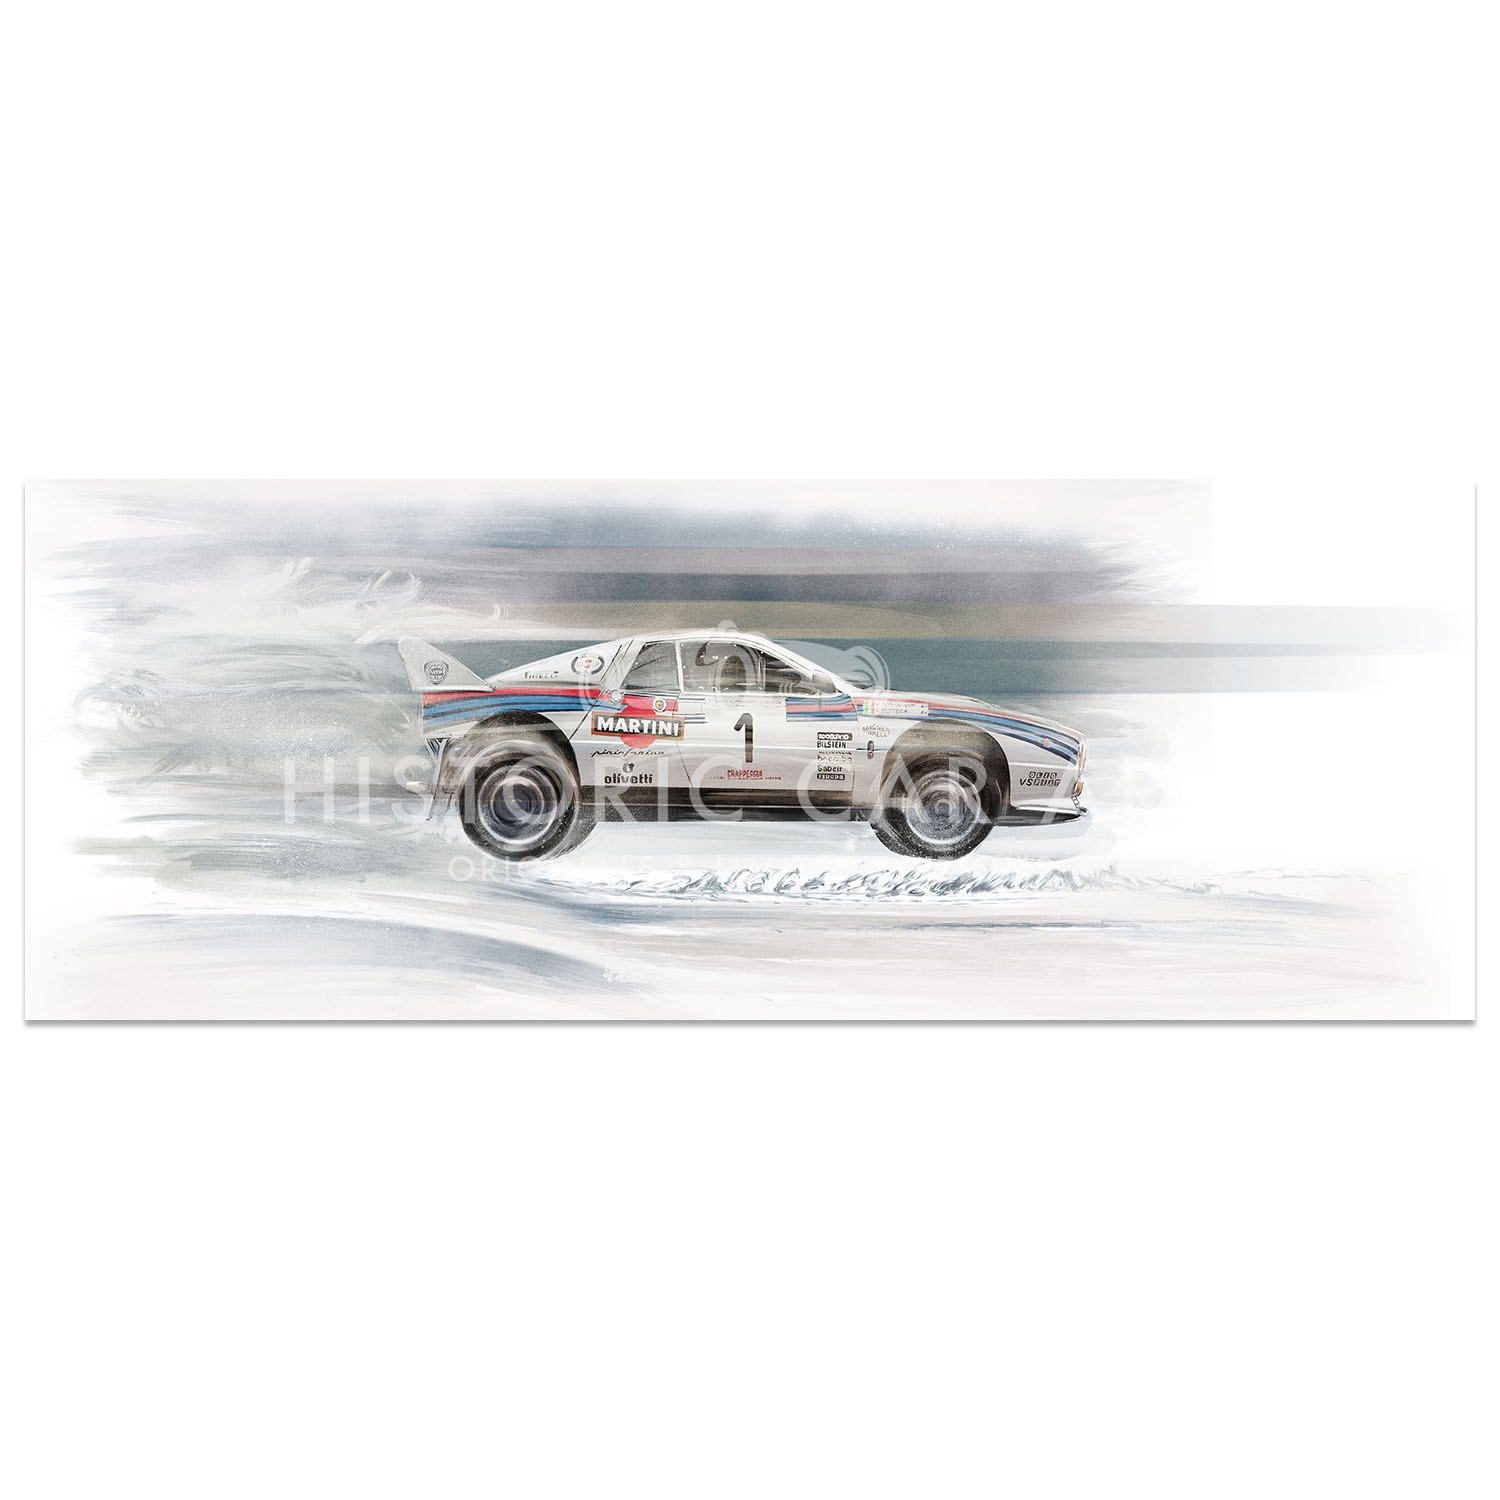 Lancia 037 | 1984 Rally Autodromo di Monza | Artwork | Art Print